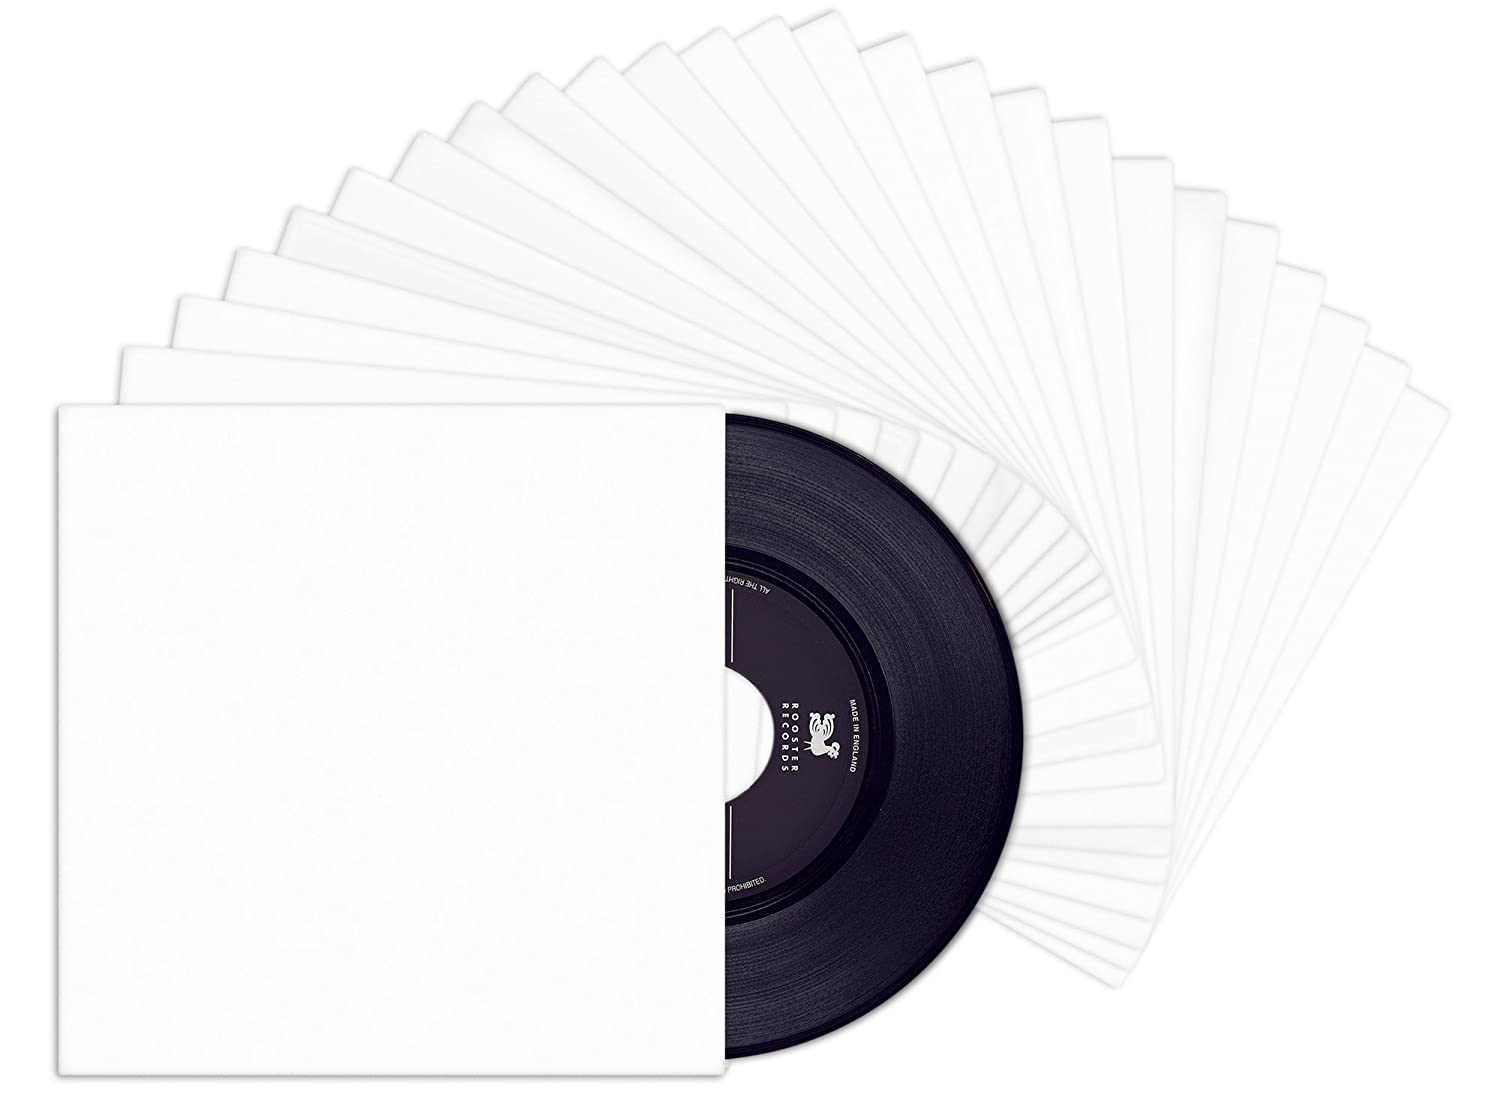 Music Lovely 100 Archival Quality Acidfree Heavyweight Paper Inner Sleeves For 7 Inch Vinyl A Great Variety Of Goods